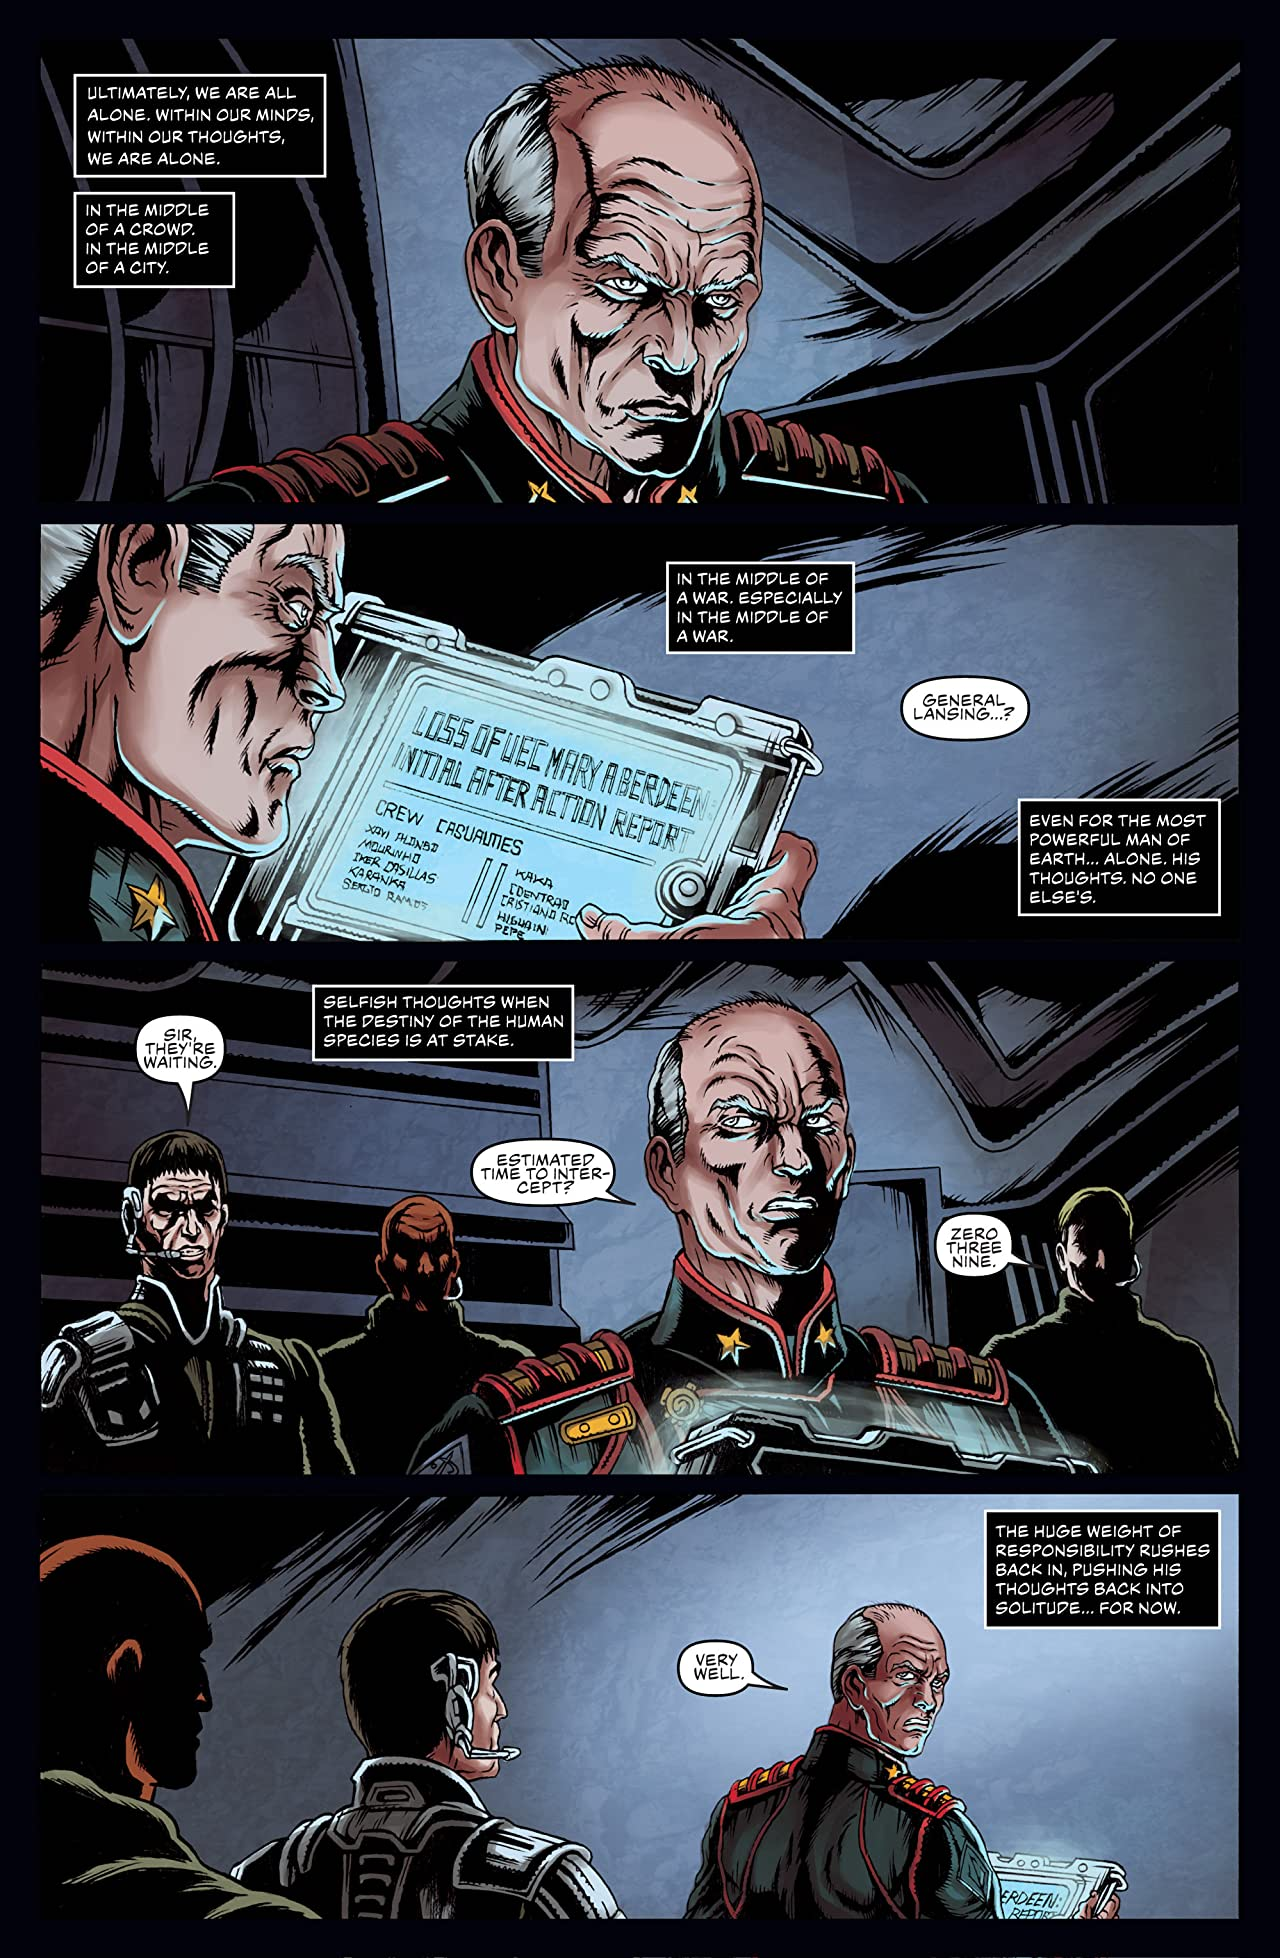 Stalag-X: Blood War #3